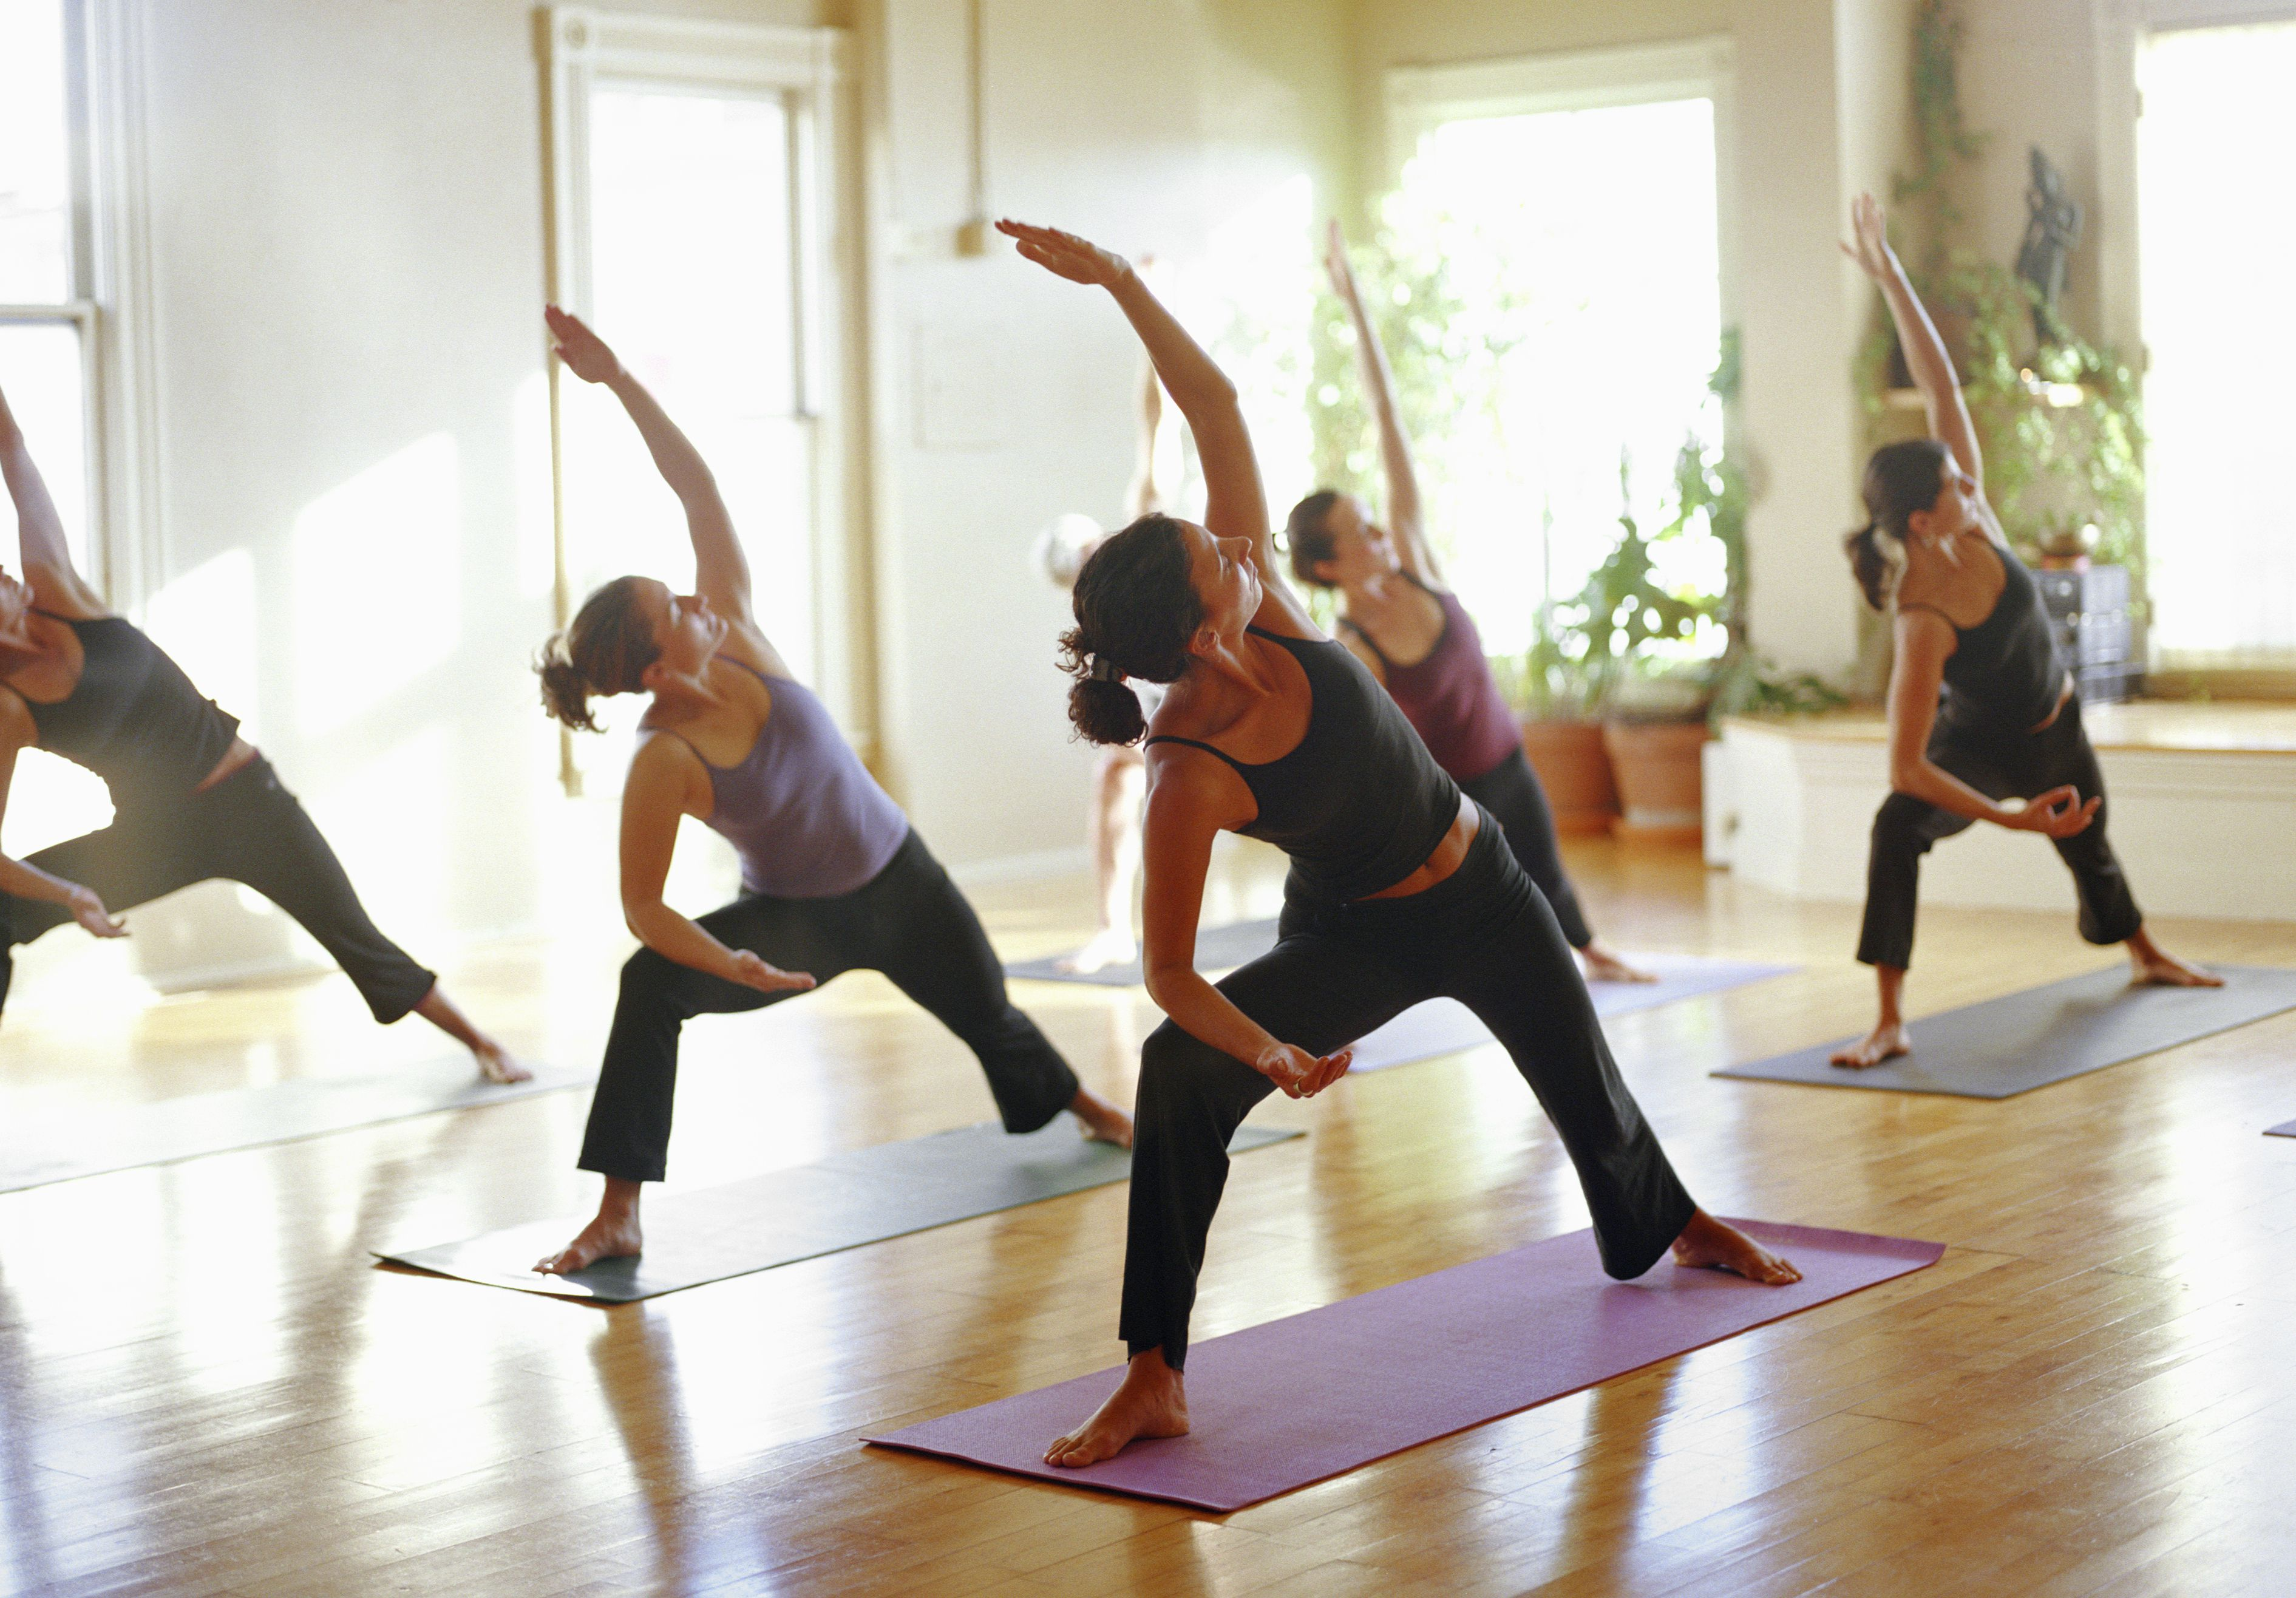 Etiquette Tips for Your Next Work-Out Class